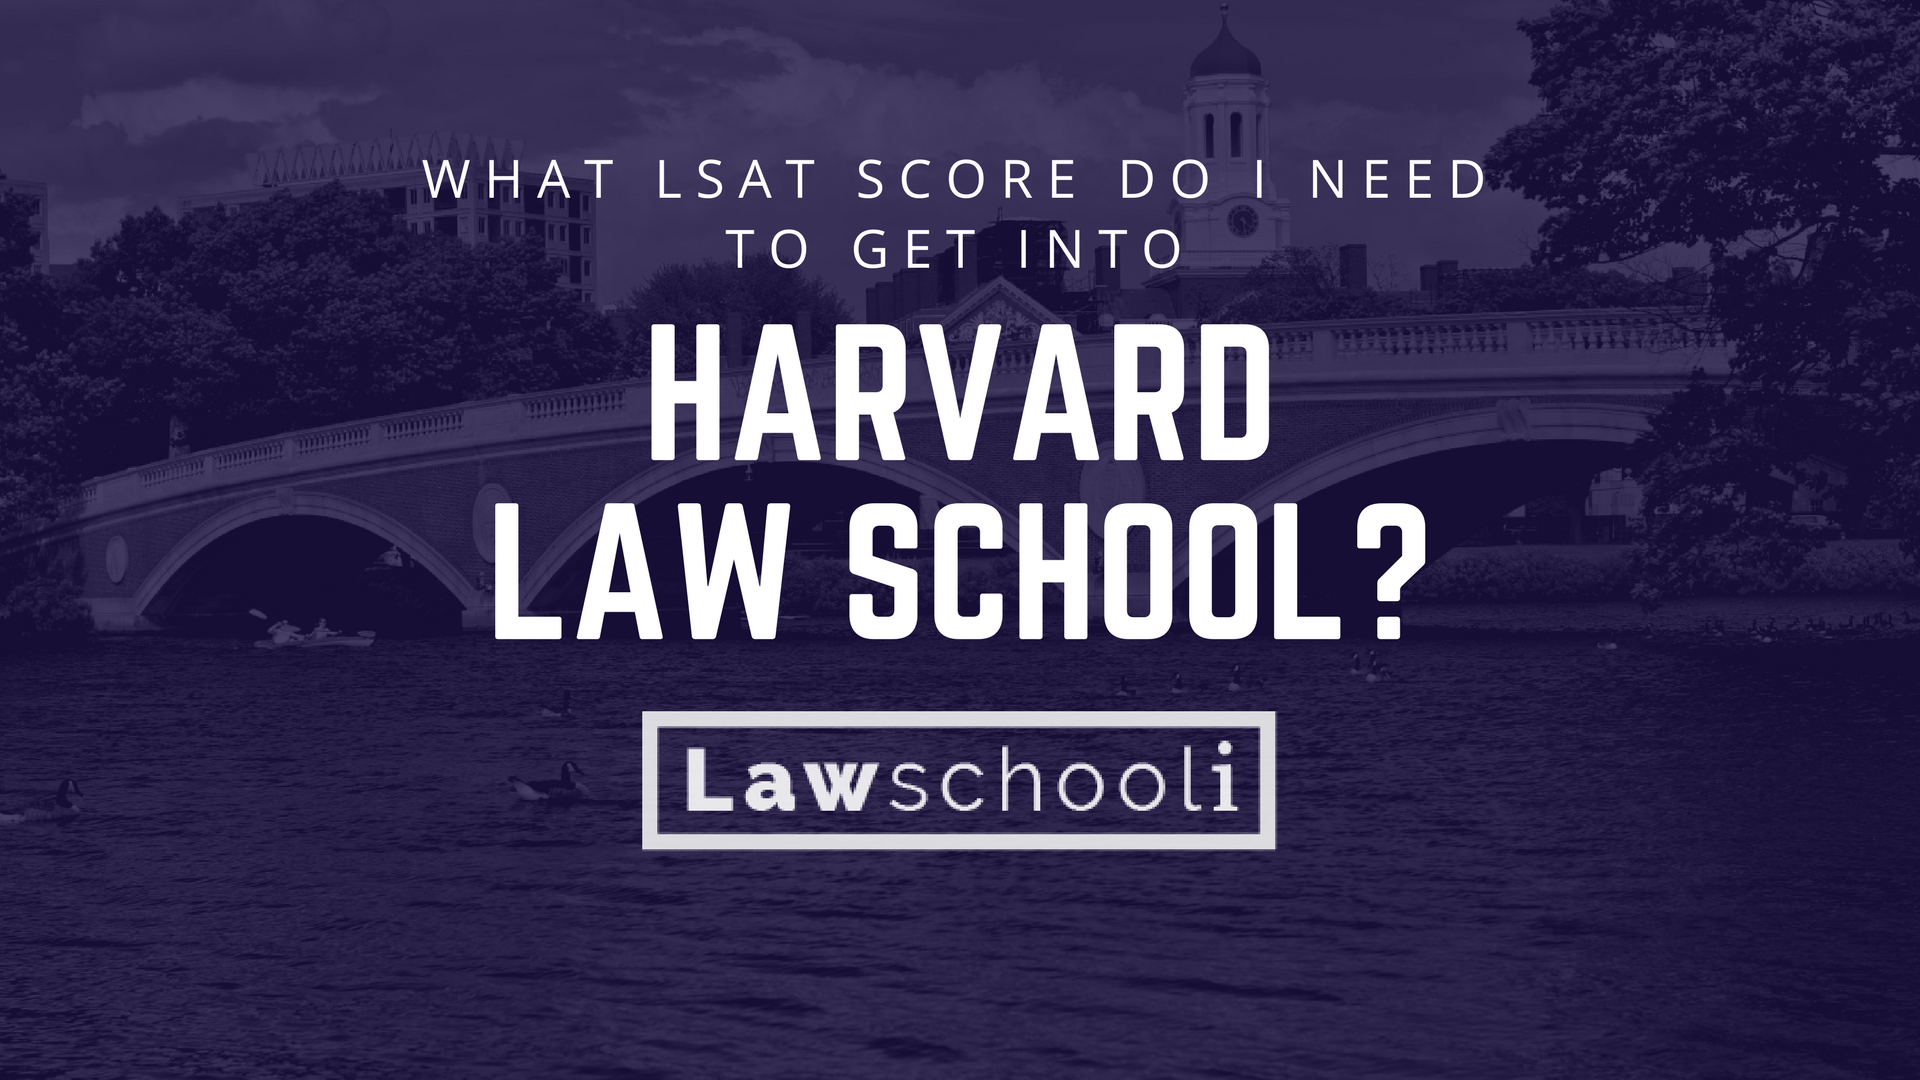 What LSAT score do I need to get into Harvard Law School